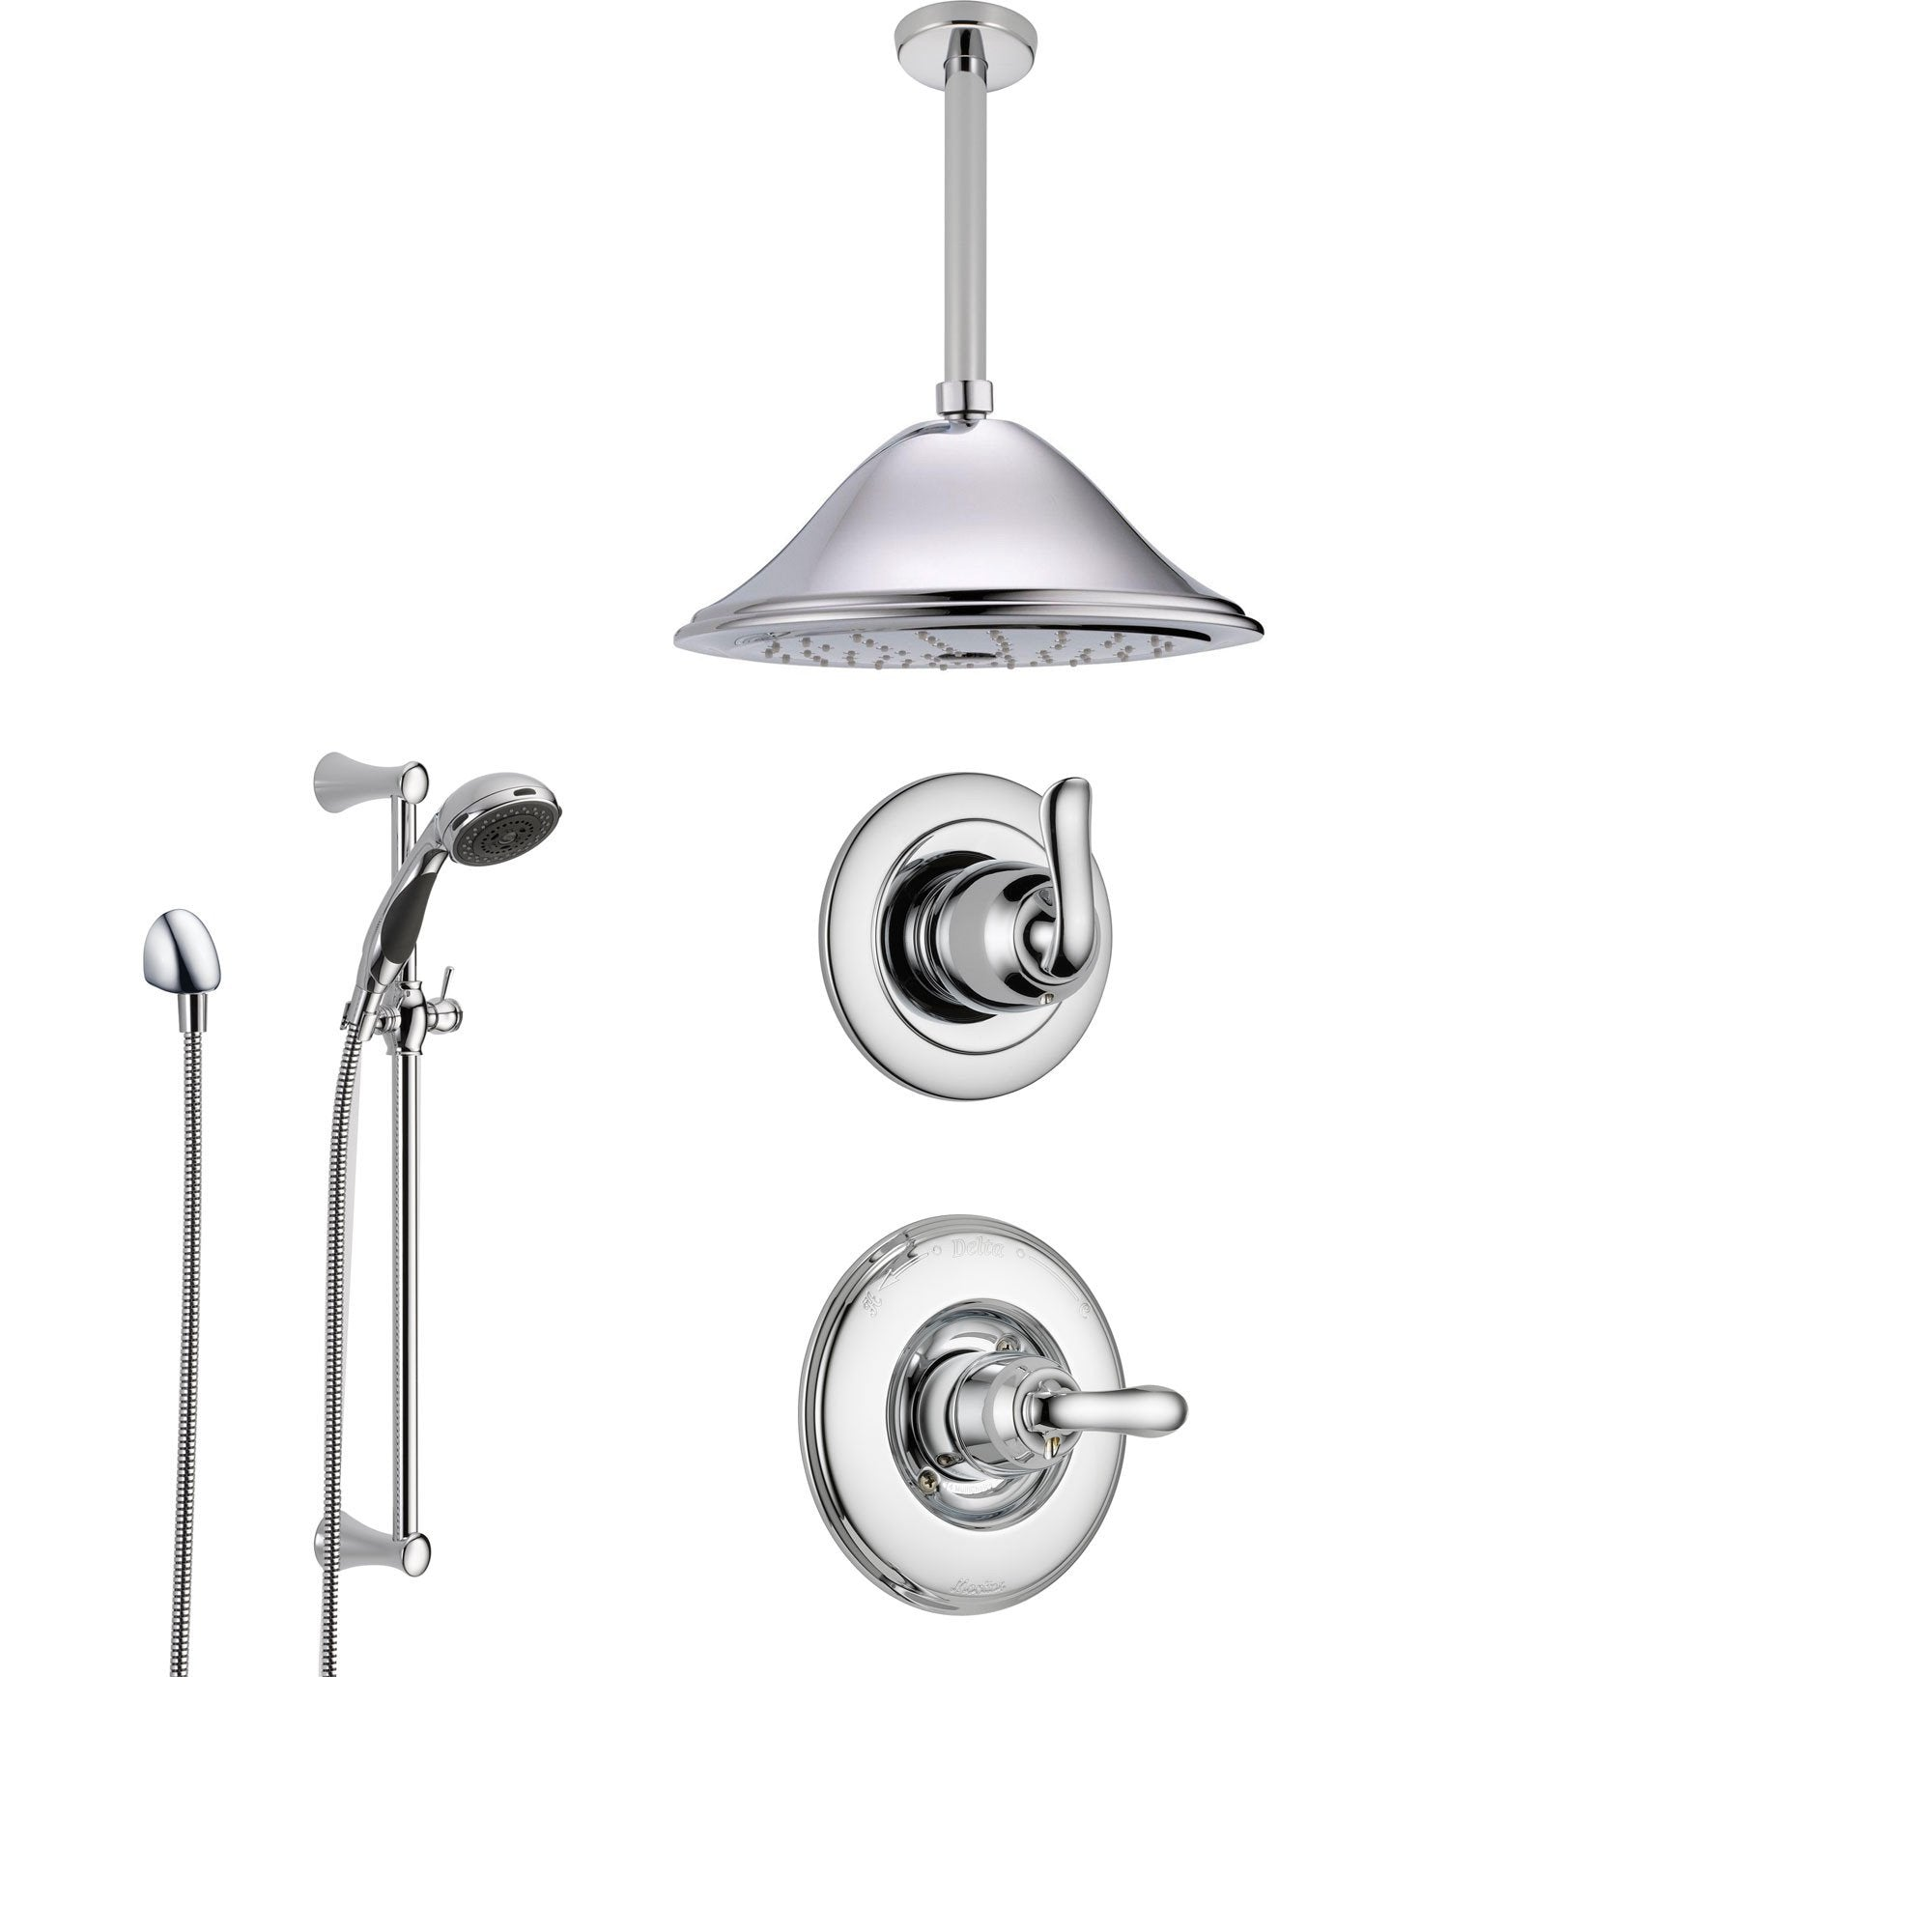 Delta Linden Chrome Shower System With Normal Shower Handle, 3 Setting    FaucetList.com